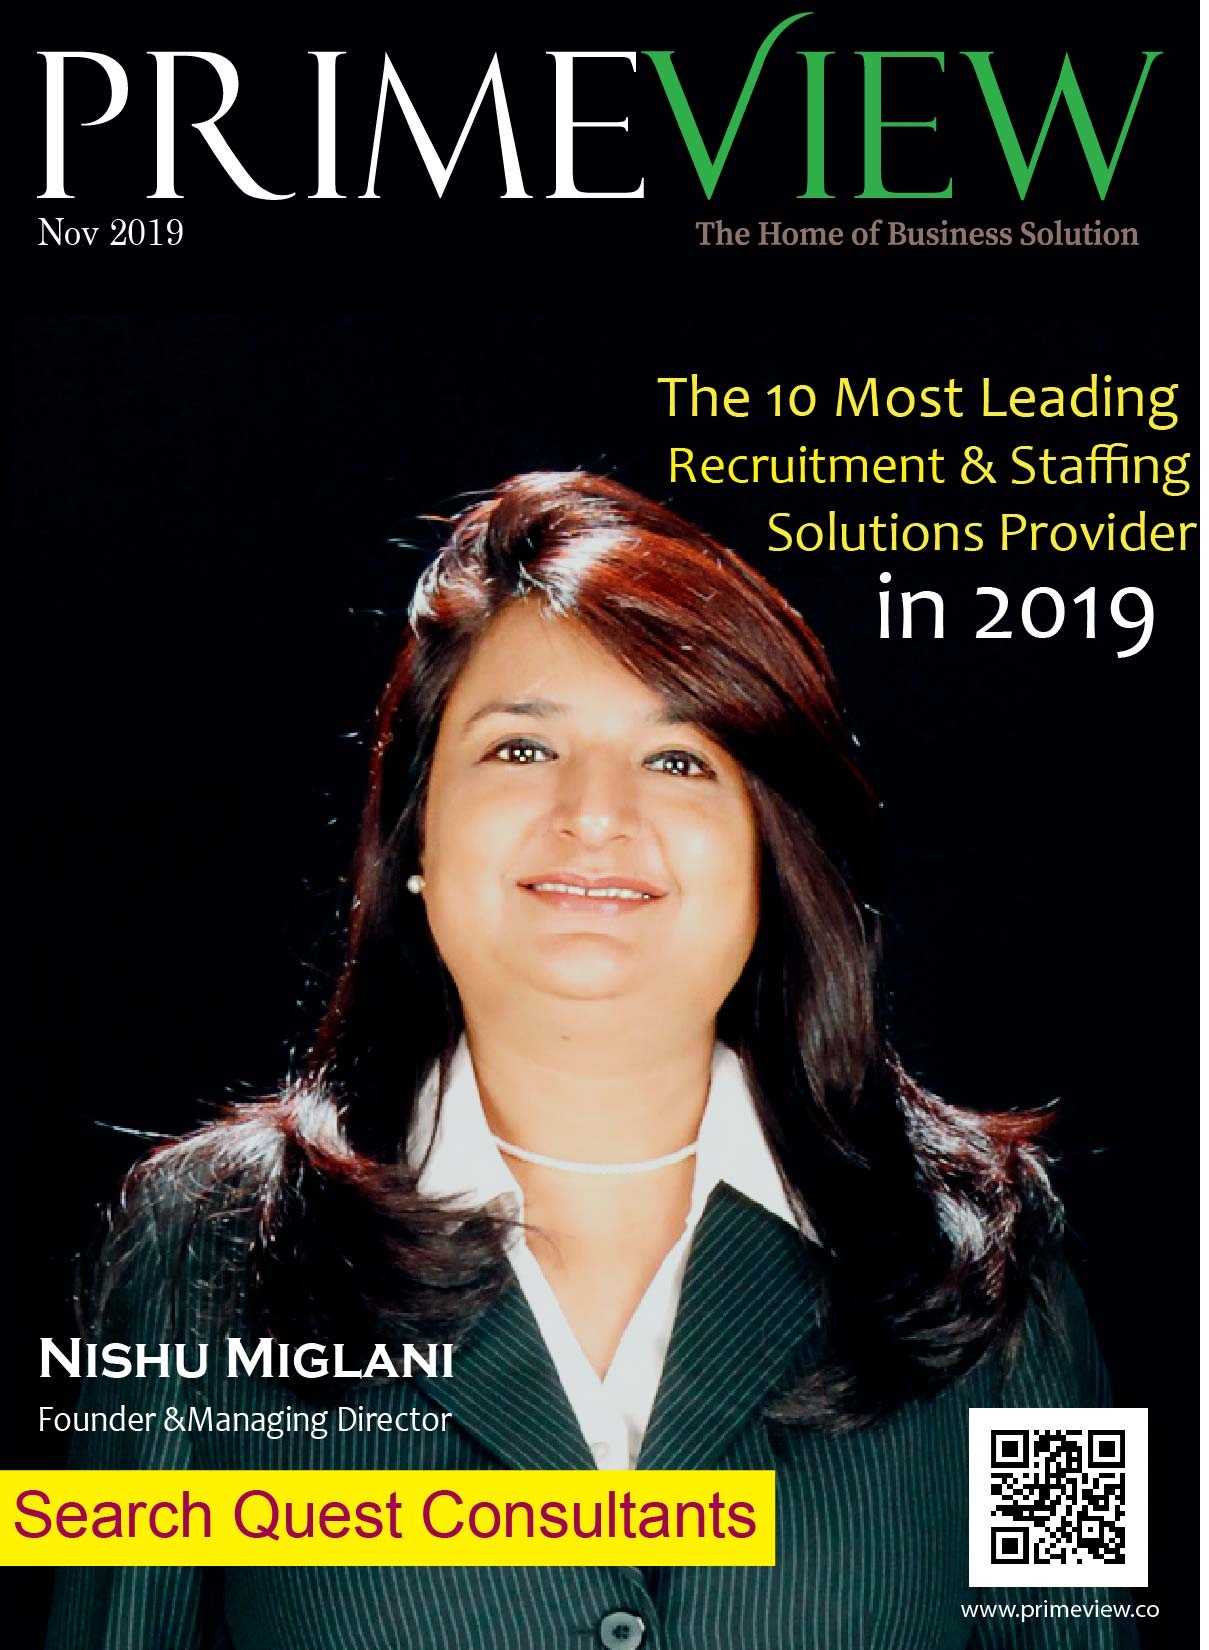 nishu miglani_ Search Quesr Consultants